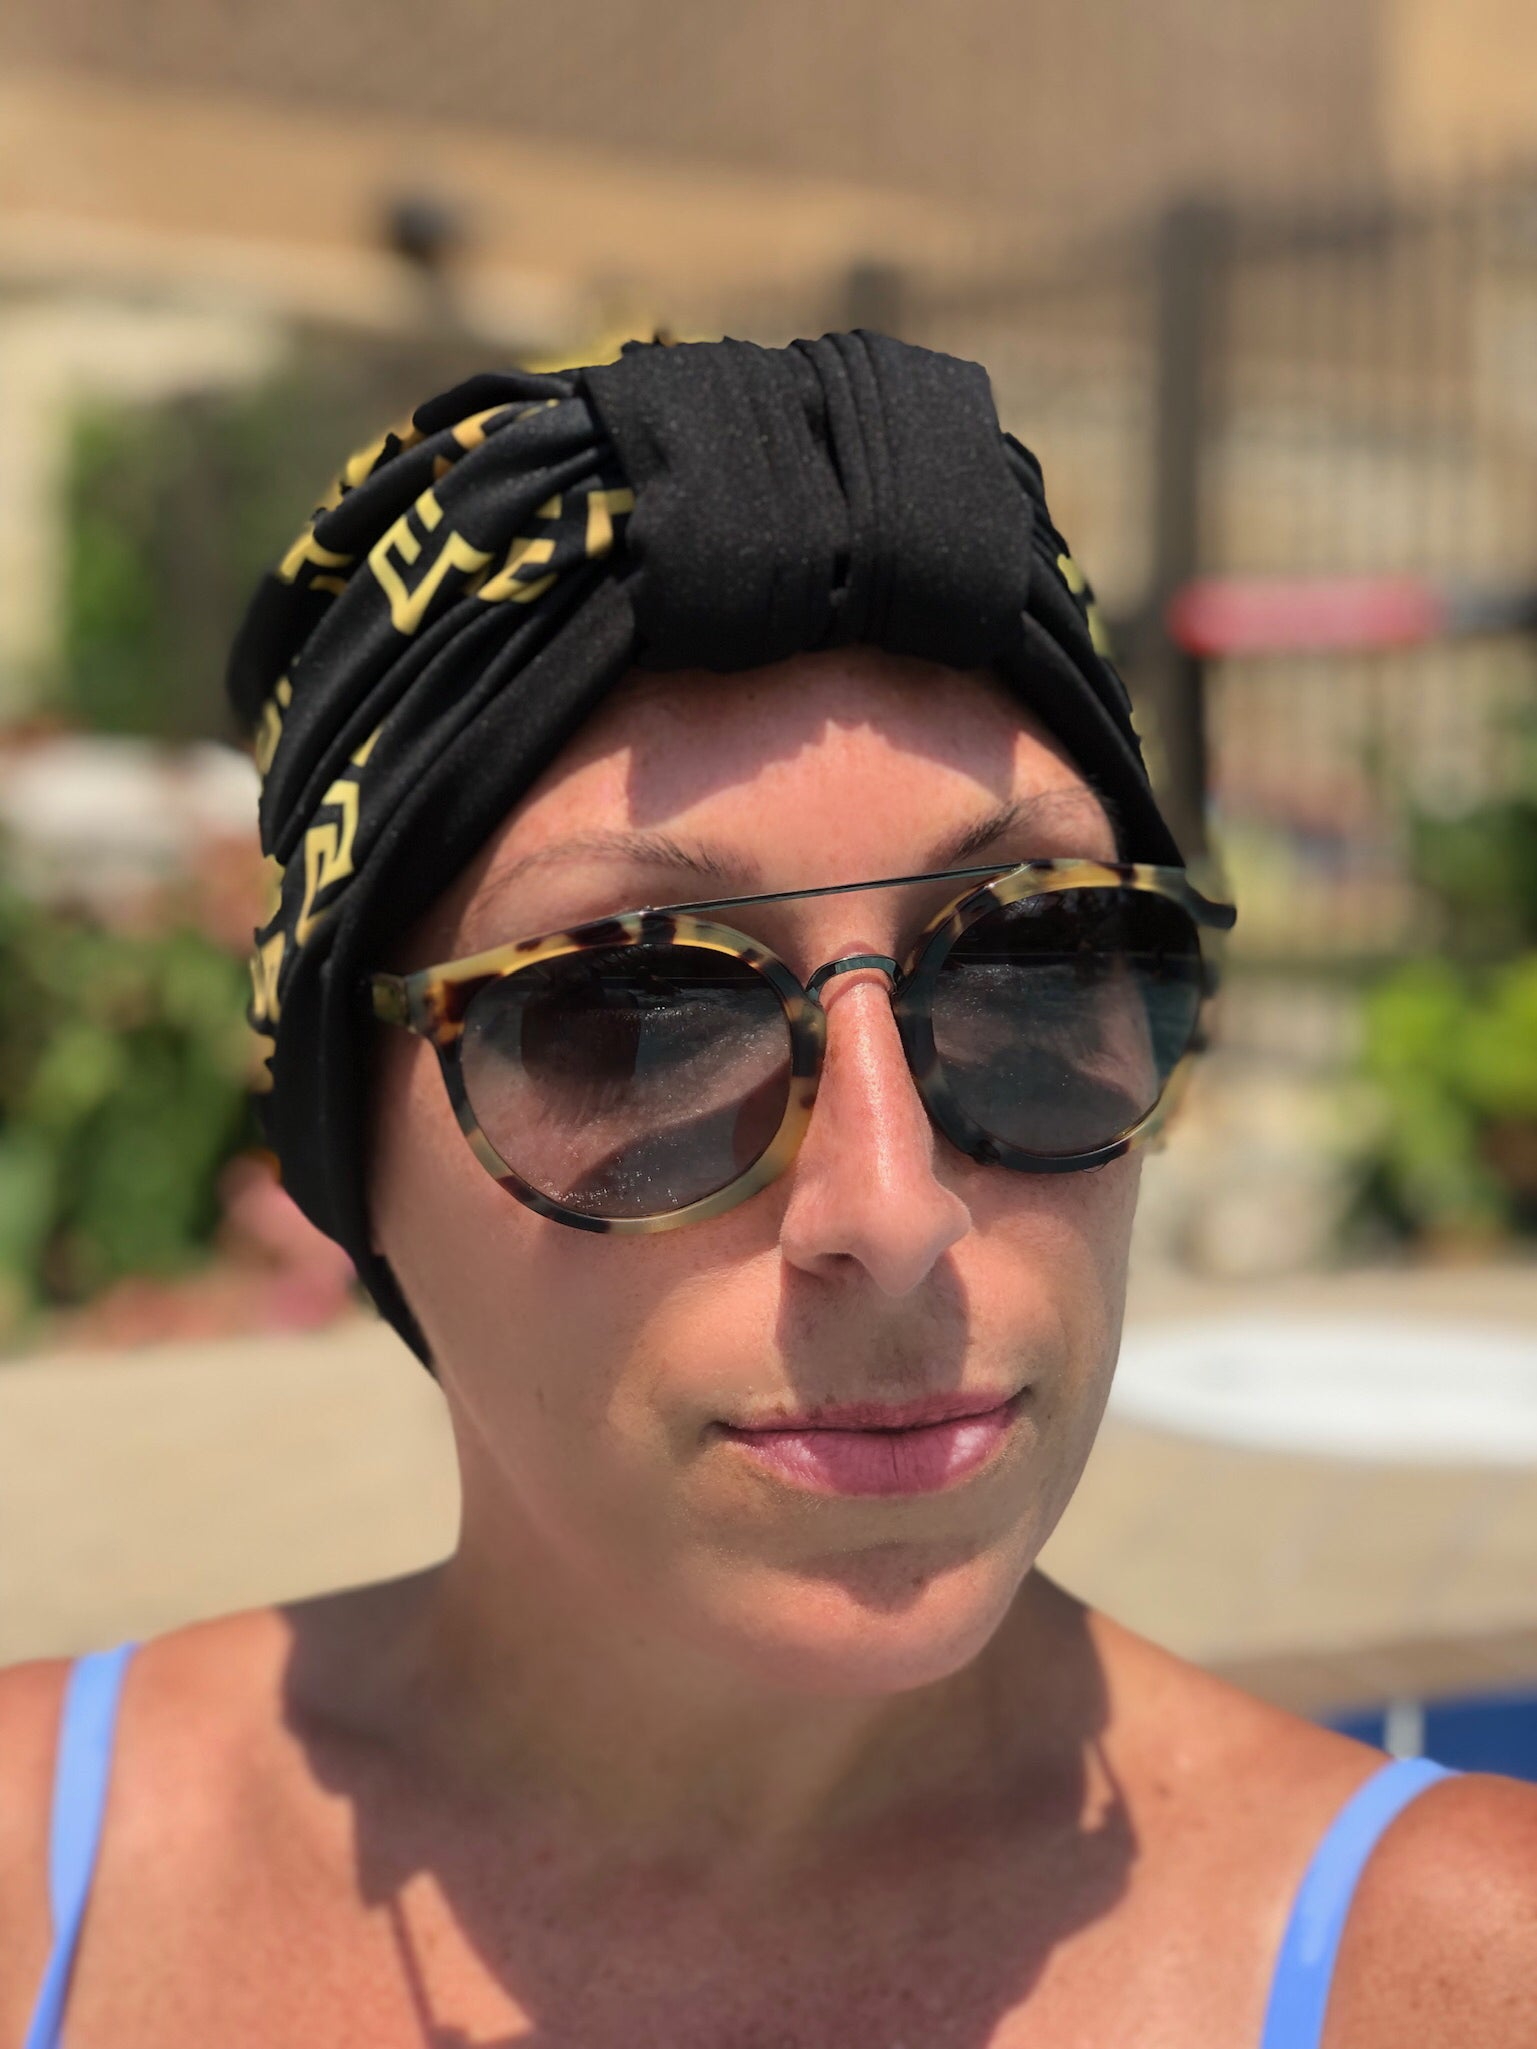 AQUA Waterproof Headwear, Luxe Banded Turban in Gold and Black